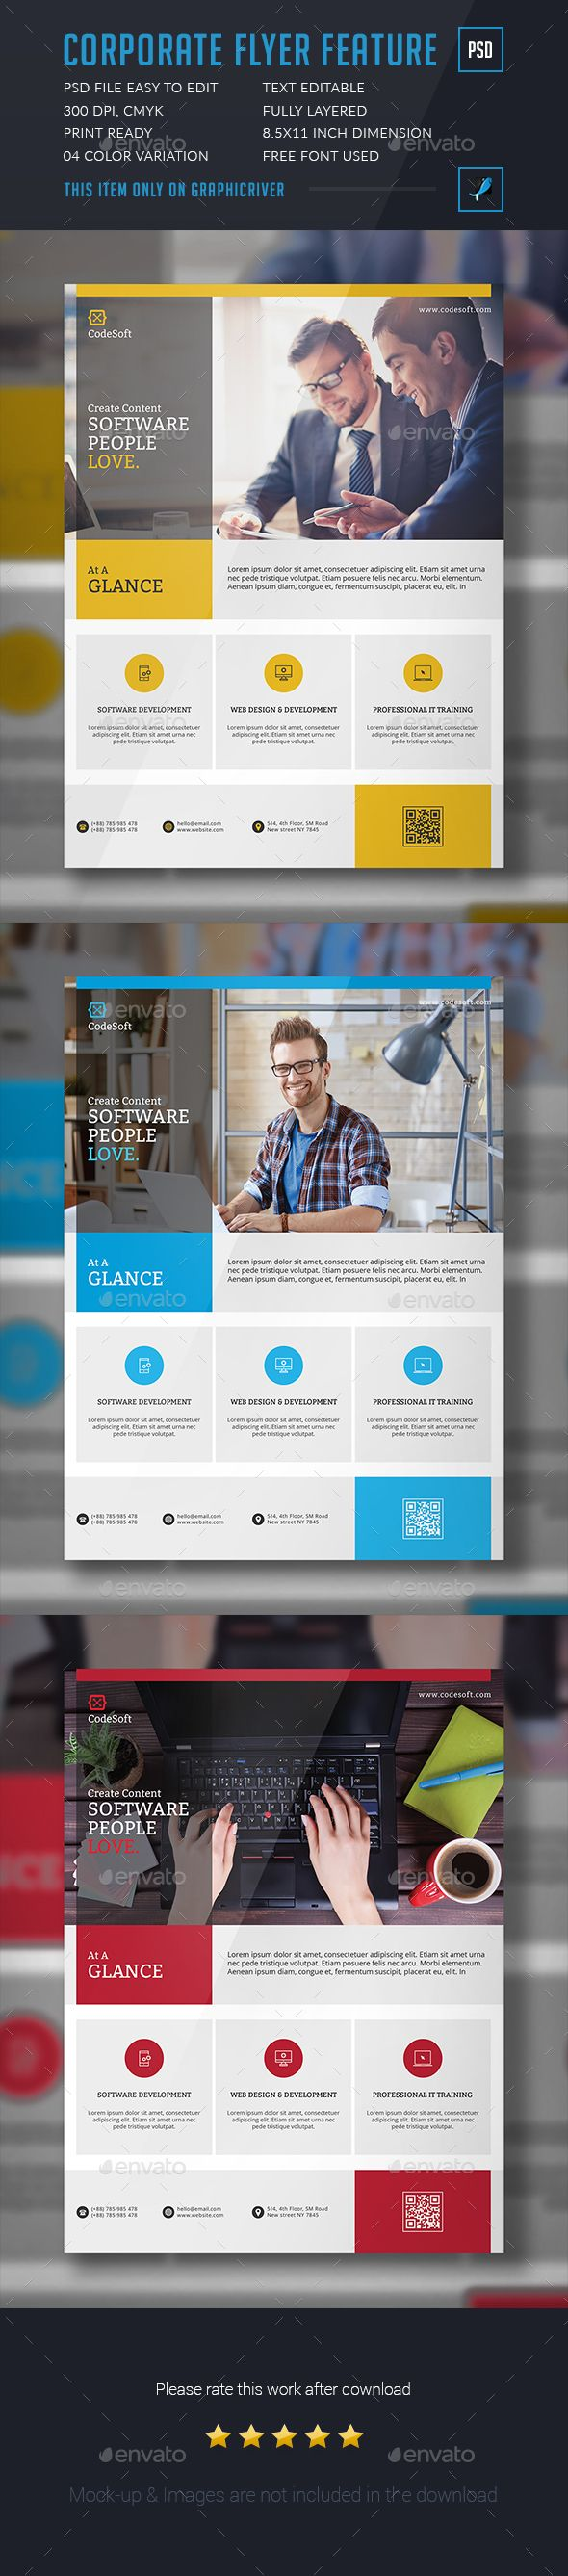 Corporate Flyer Template PSD. Download here: graphicriver.net/...